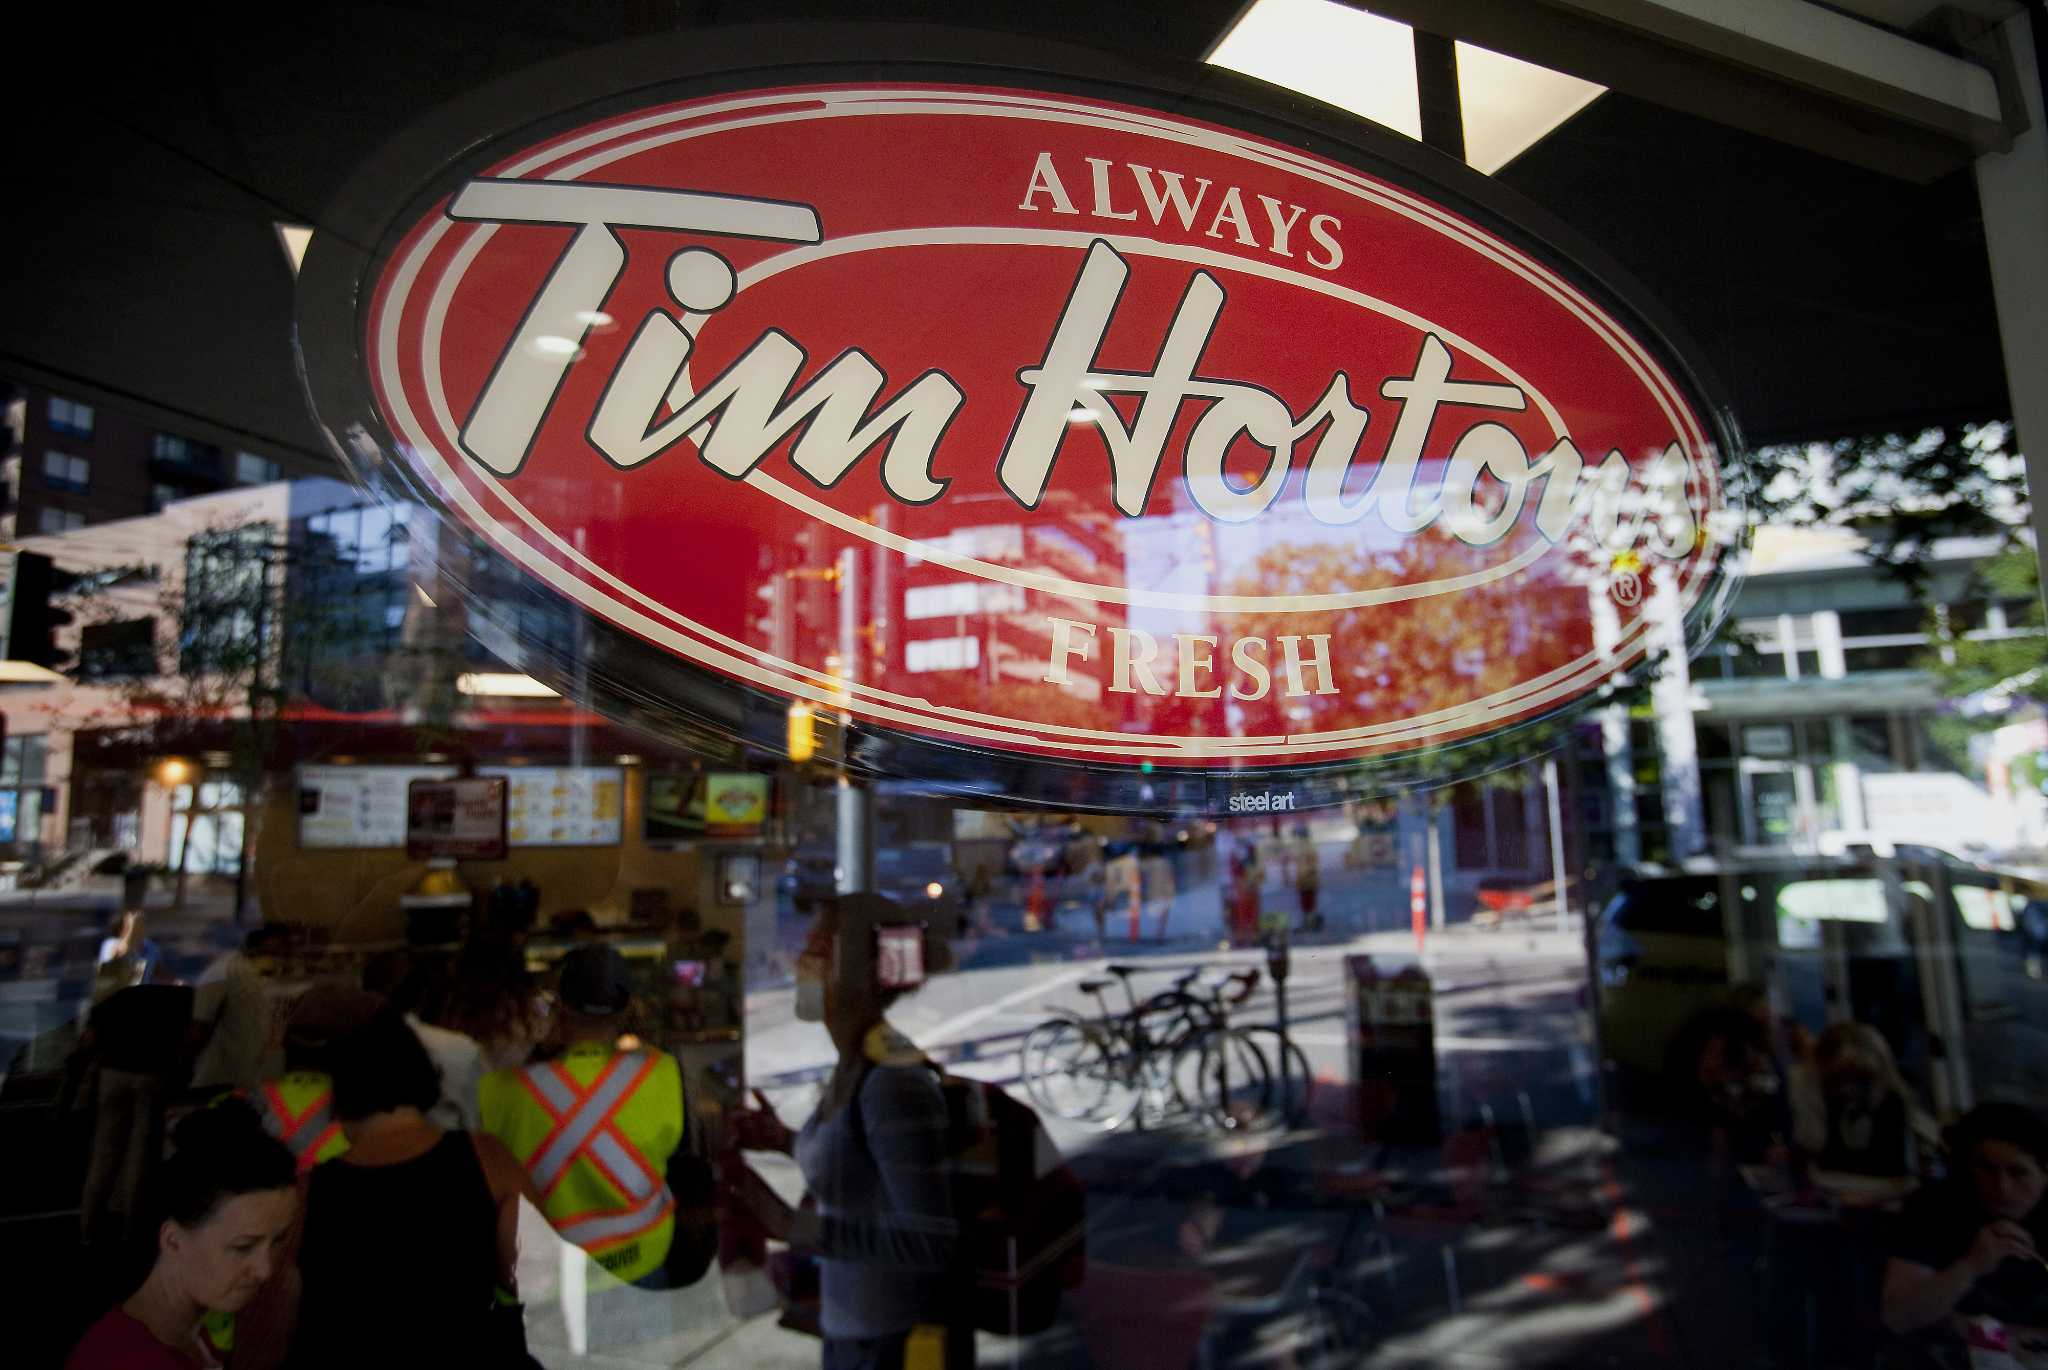 tim hortons company analysis Competitve analysis tim hortons  tim hortons follows a dominant business diversification strategy the firm generates between 70% and 95% of its revenue from its core restaurant business, but has also diversified into related retail businesses the firm sells its.